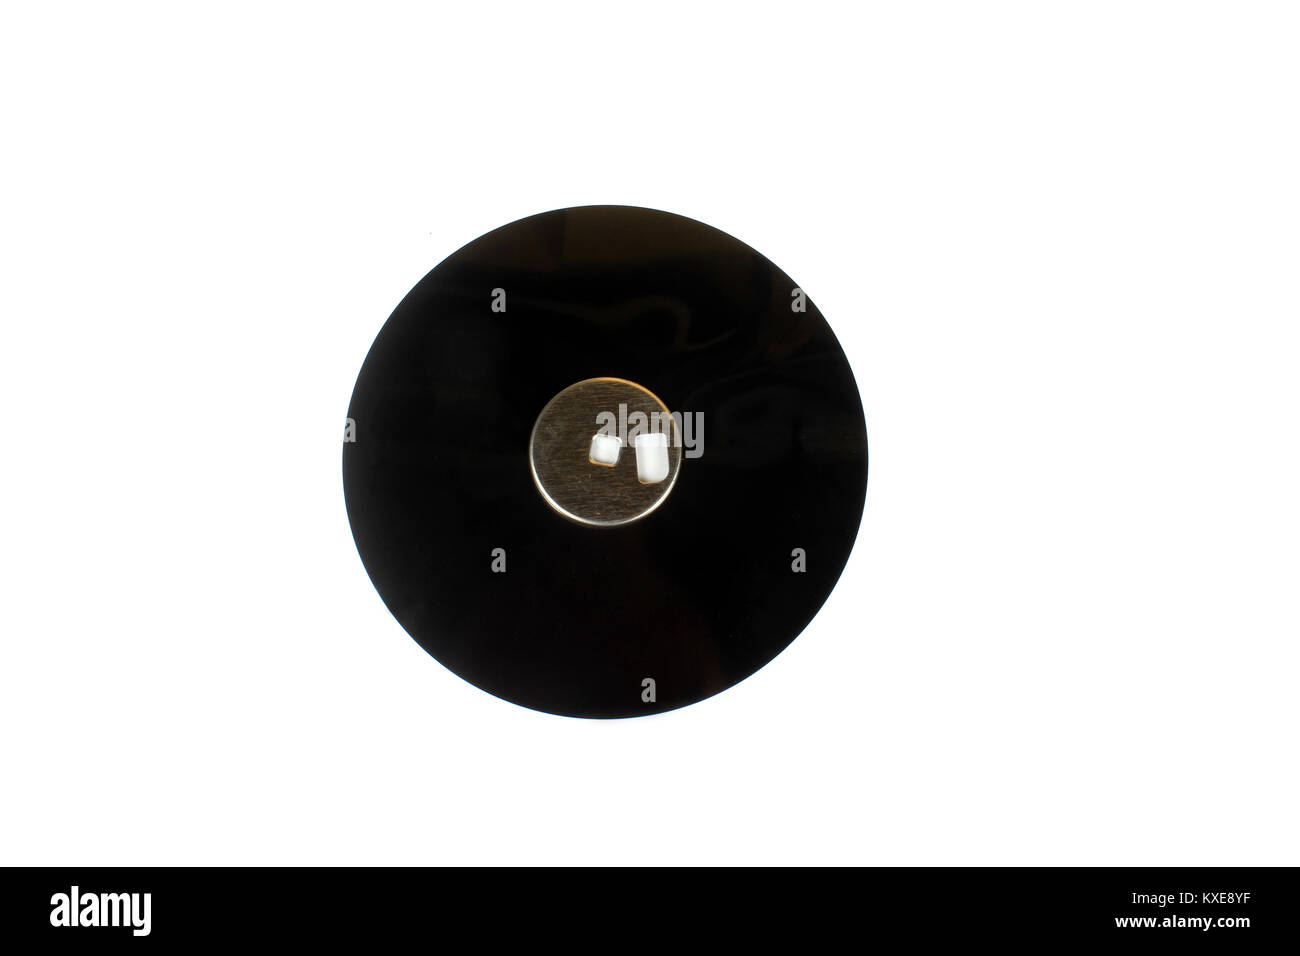 The round magnetic disk inside a floppy disc used to store data before. - Stock Image